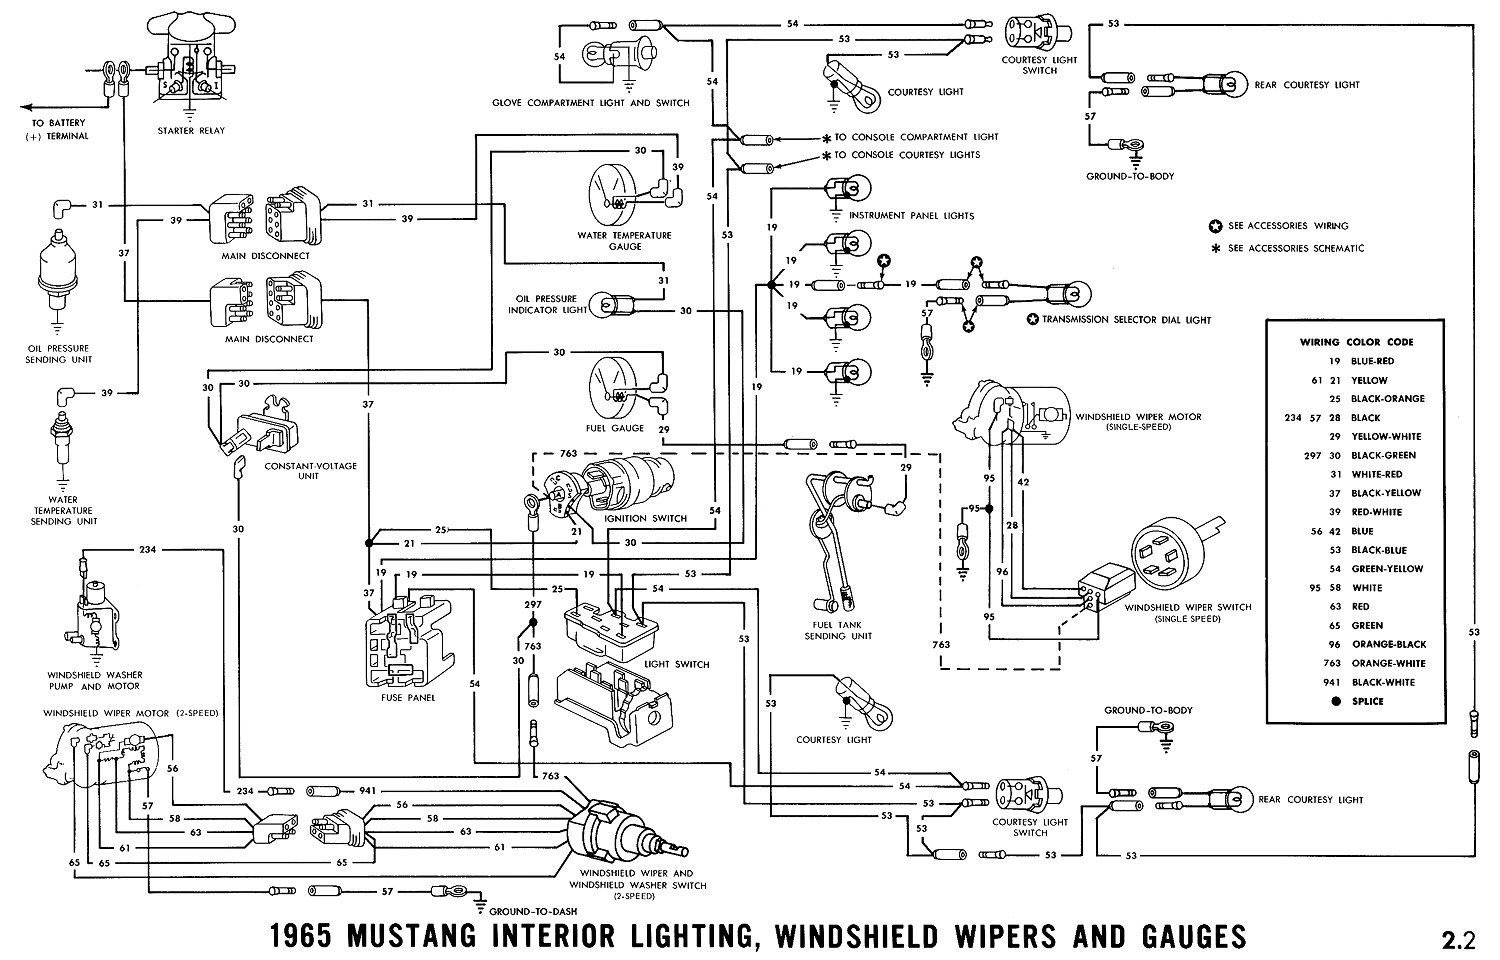 1965g 1965 mustang wiring diagrams average joe restoration wiring harness 1964 mustang at bayanpartner.co